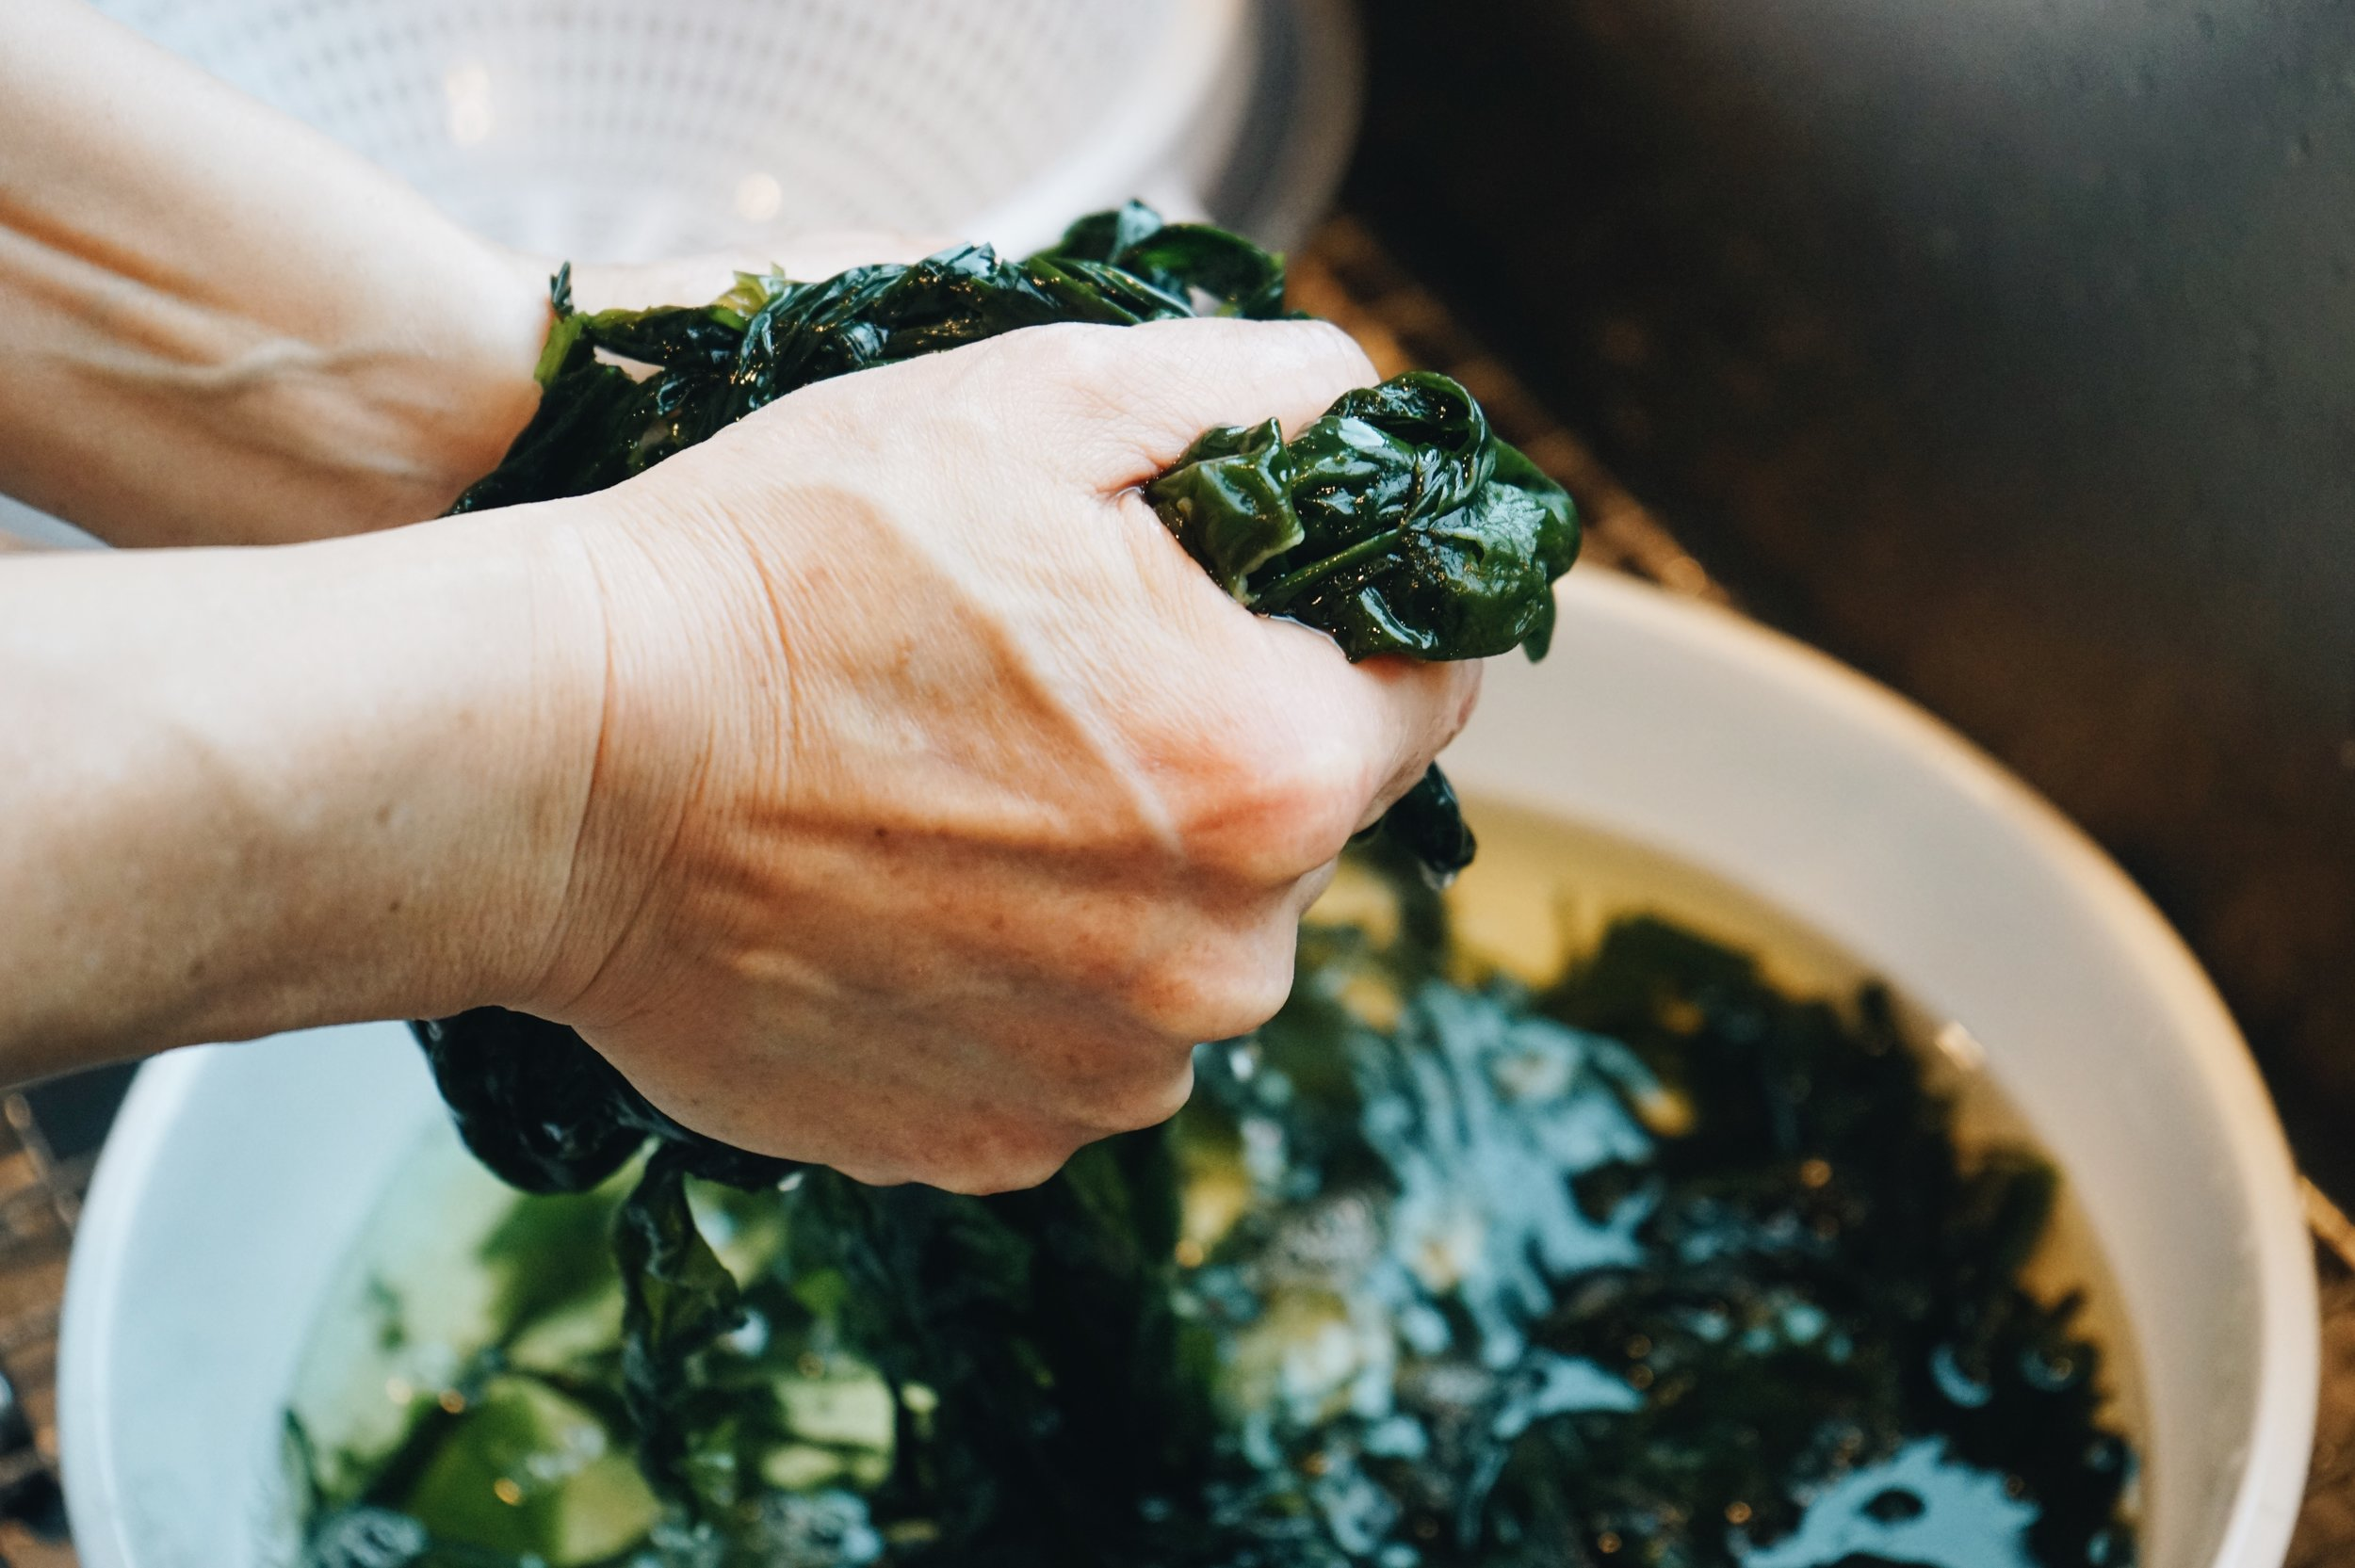 The author's mother washes seaweed to make miyeok-guk (미역국), seaweed soup.